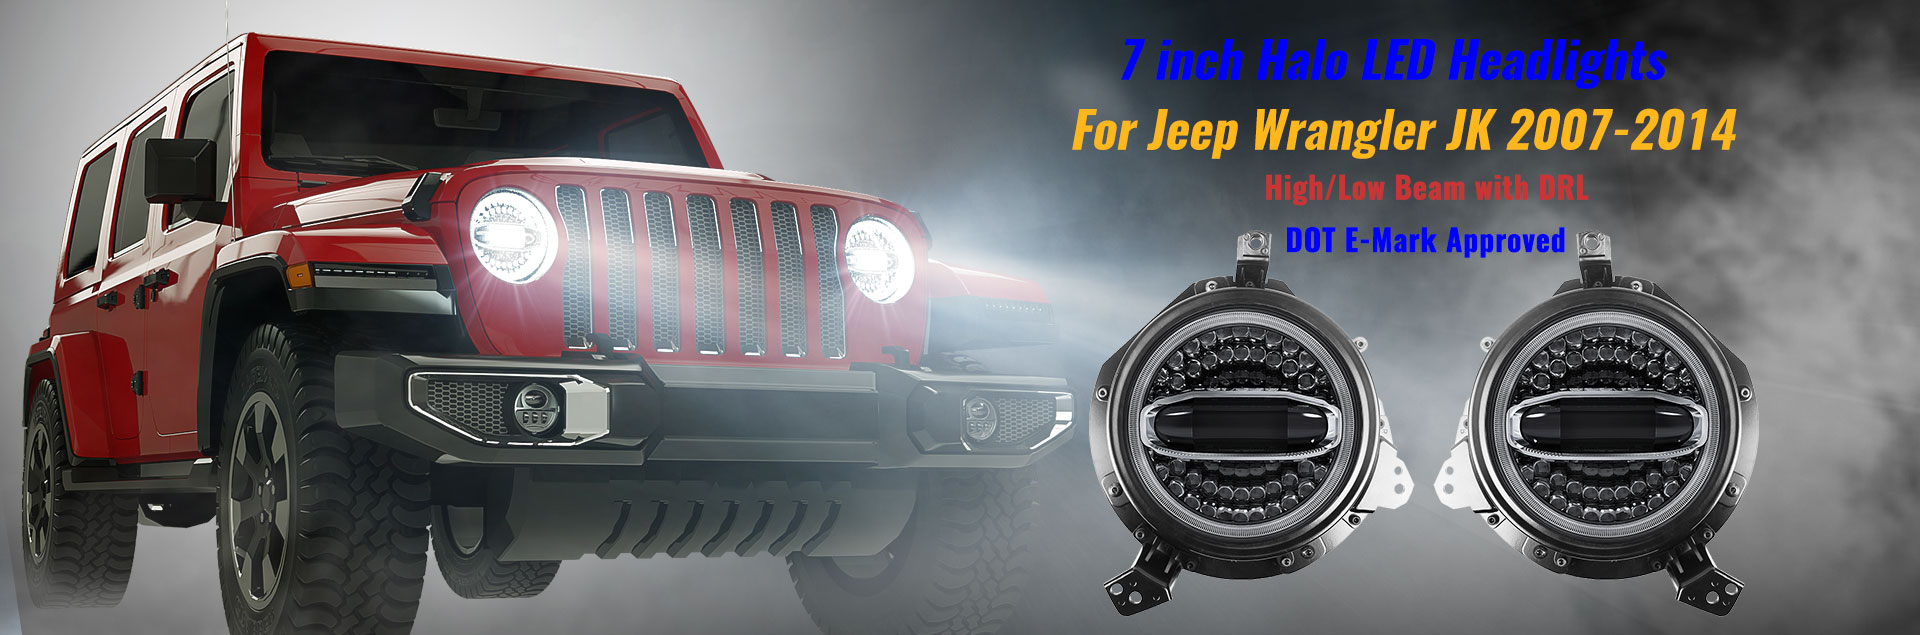 7 inch Halo Led Headlight for Jeep Wrangler JK